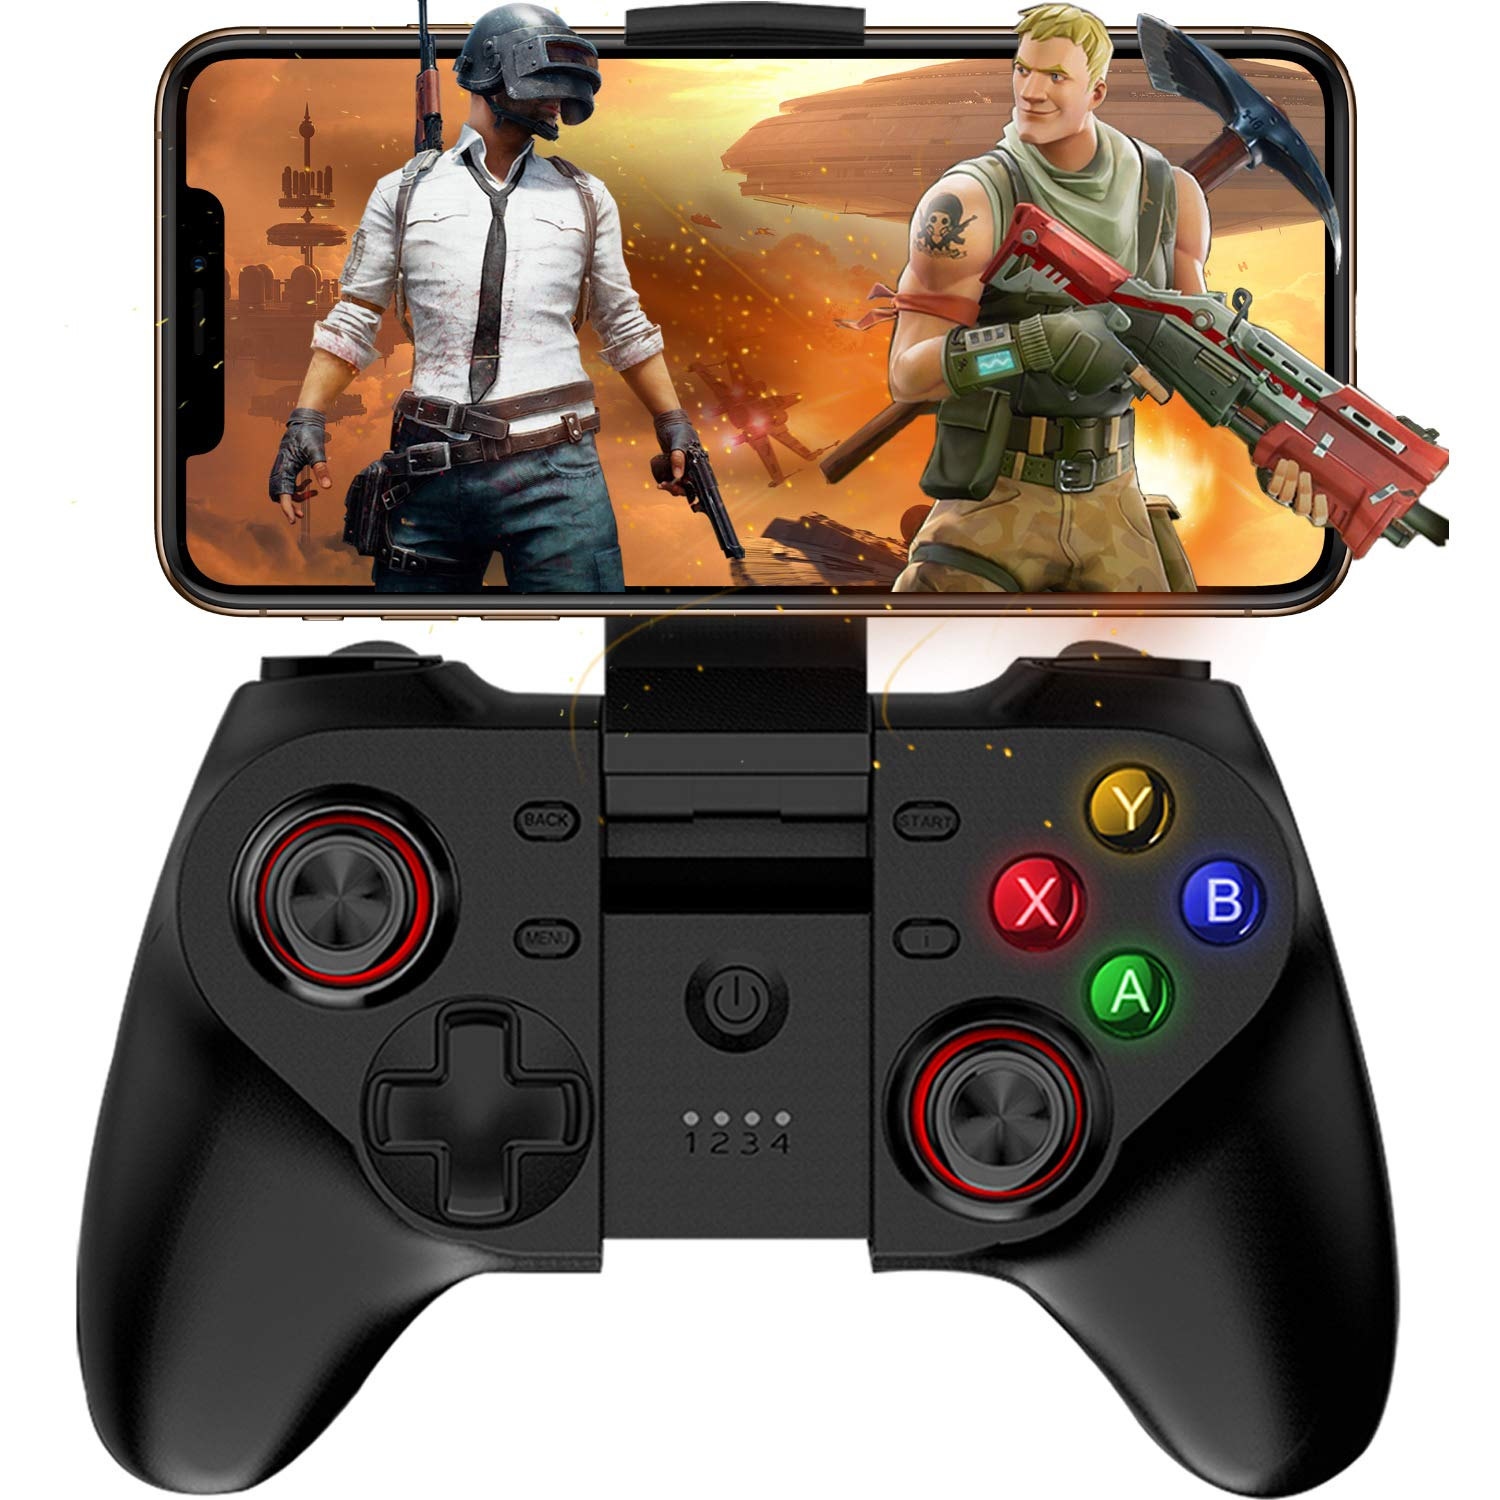 Mobile Game Controller, Megadream Wireless Key Mapping Gamepad Joystick Perfect for PUBG & Fotnite & More, Compatible for iOS Android iPhone iPad Samsung Galaxy Other Phone & Tablet PC - Direct Play